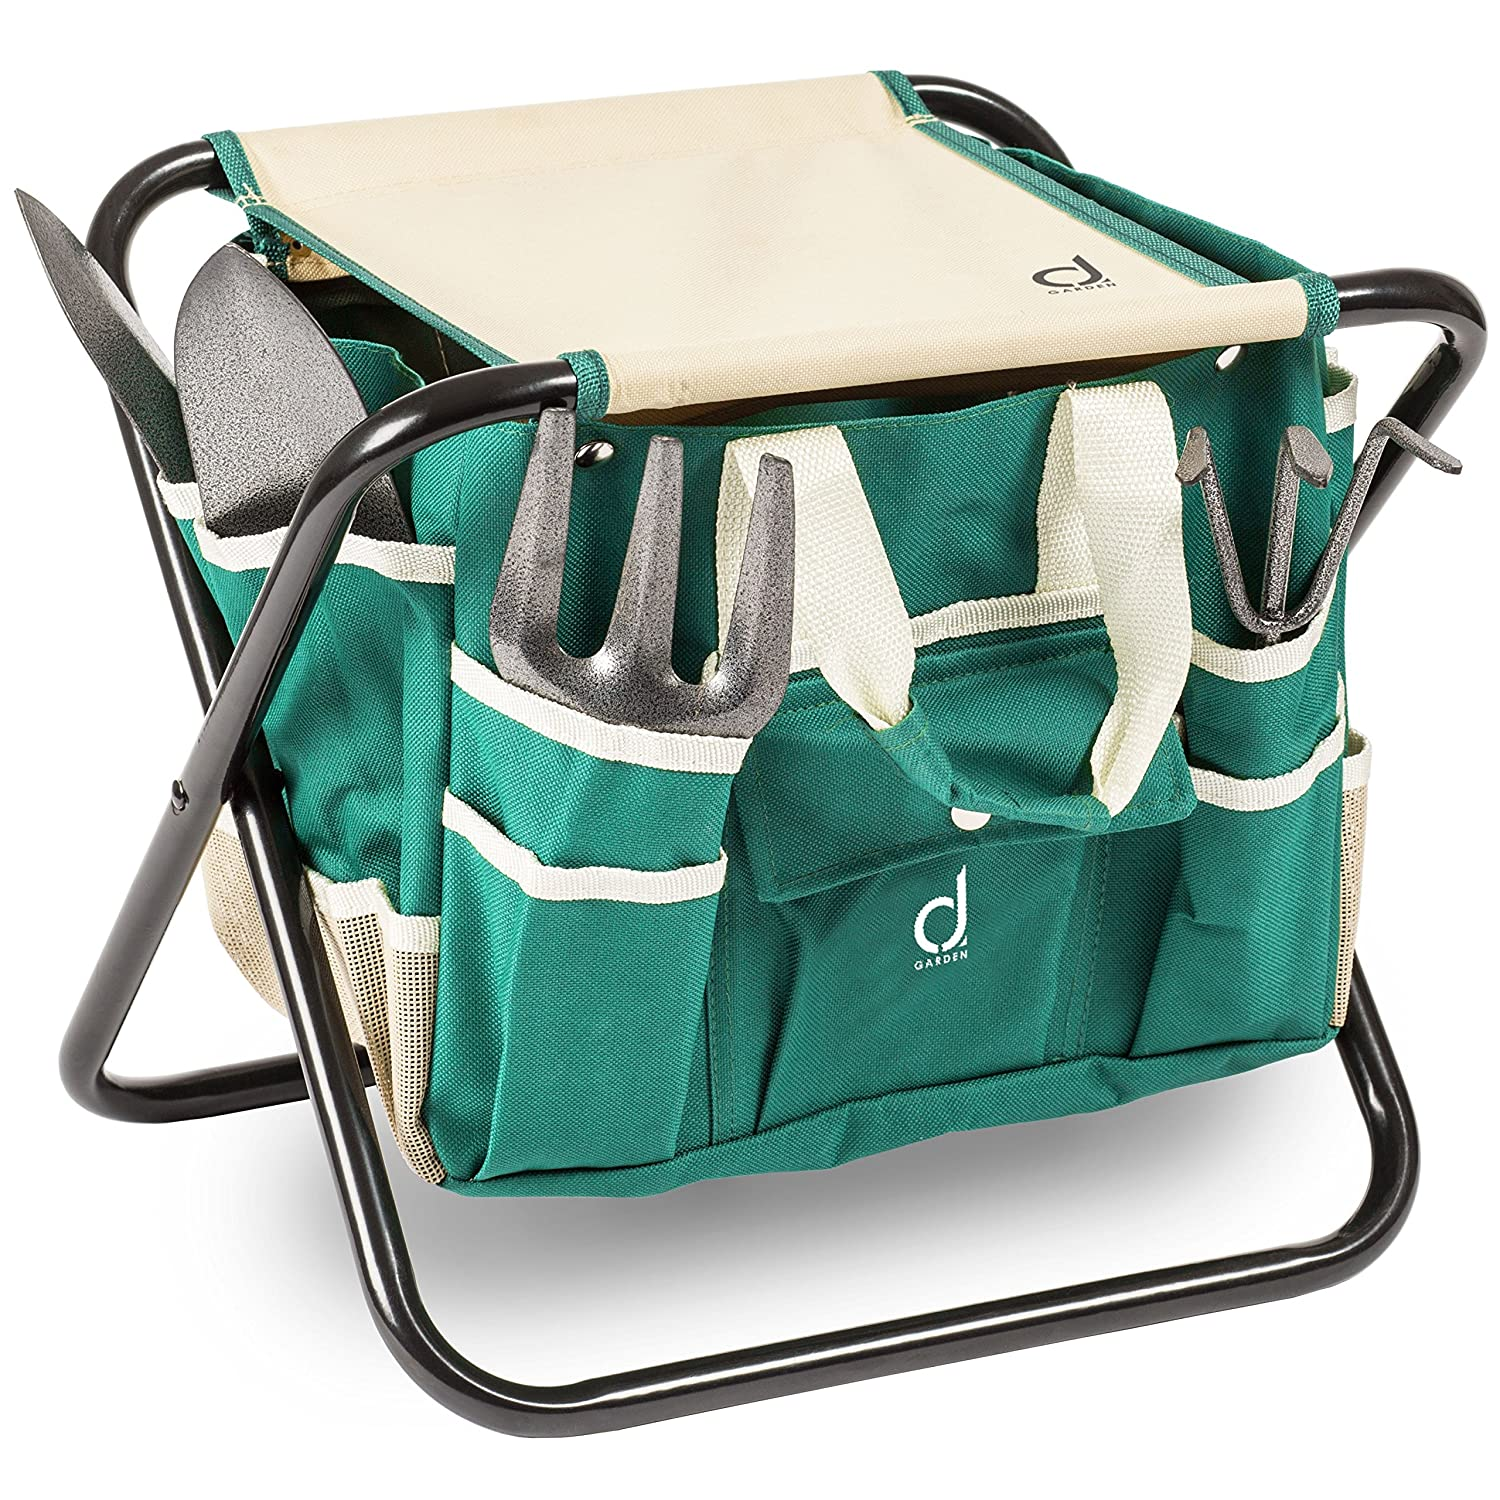 The Gardener's Tool Stool By Andrew James - Portable Folding Seat Complete With Gardening Tools In Detachable Storage Bag